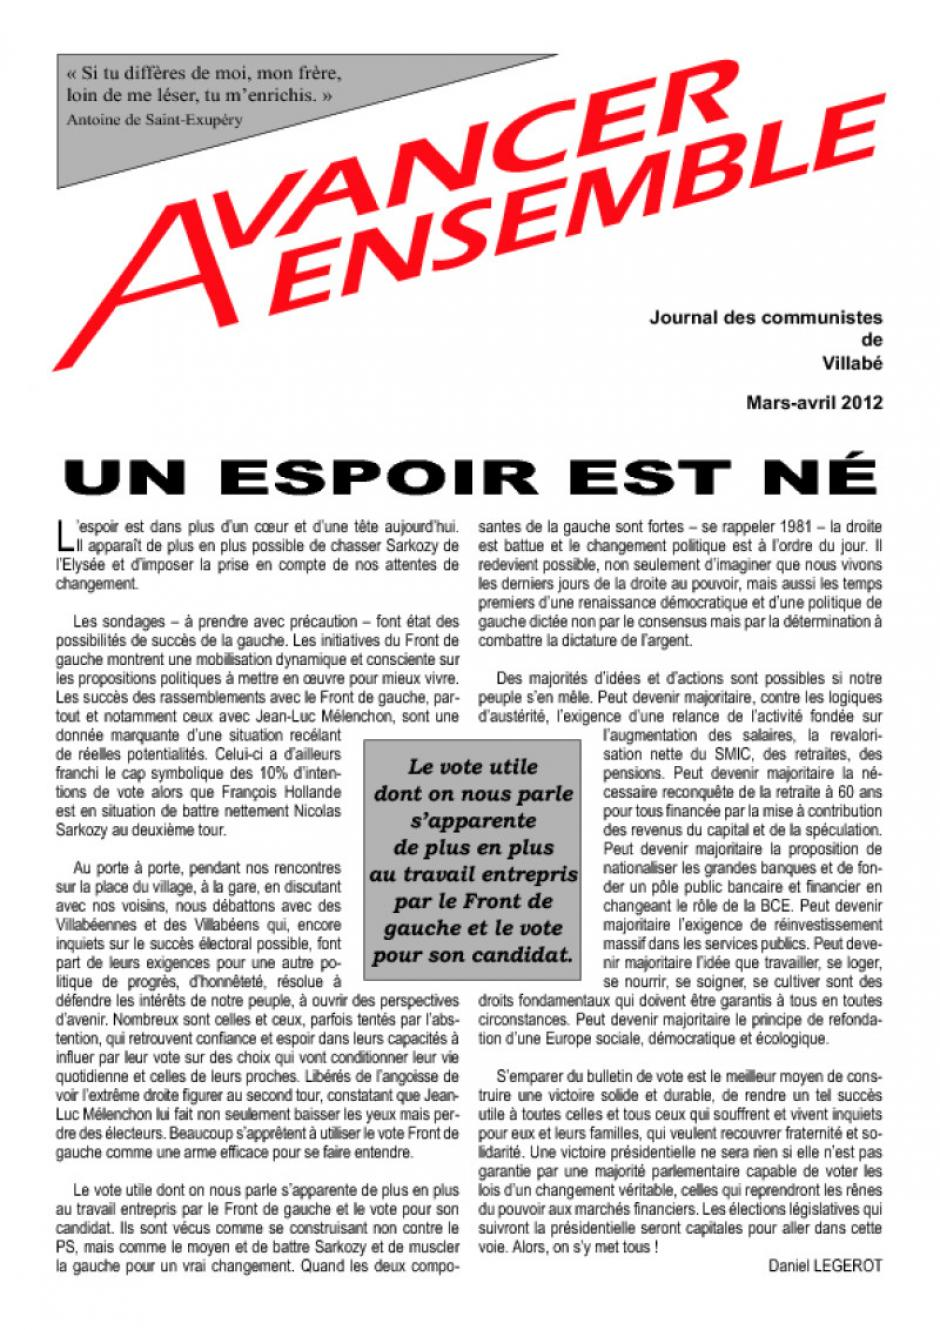 Journal des communistes de Villabé - Mars/avril 2012